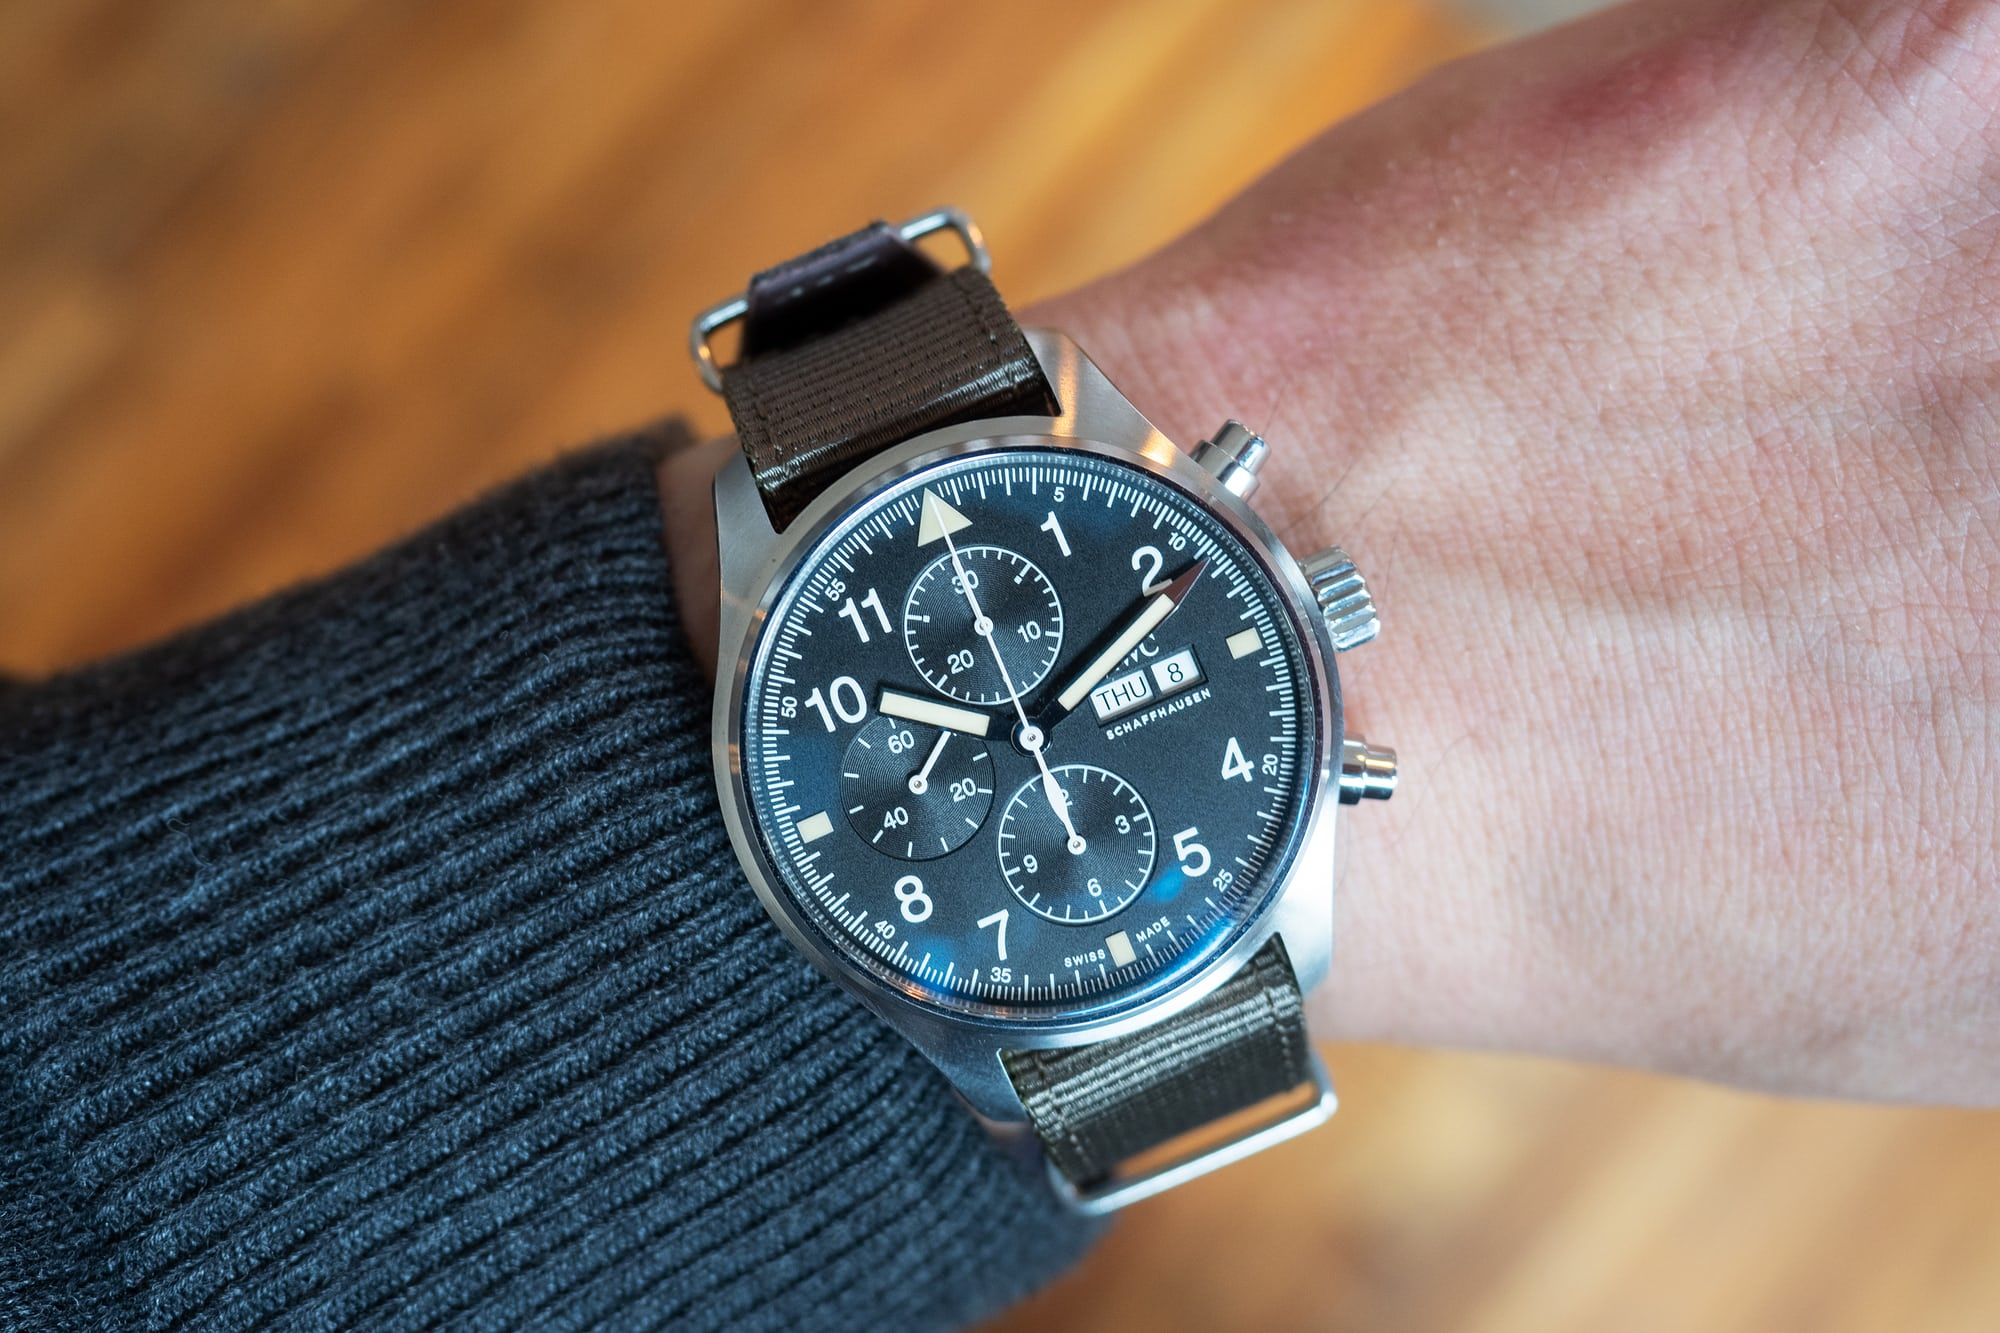 hands-on: the iwc pilot's watch chronograph ref. iw377724 Hands-On: The IWC Pilot's Watch Chronograph Ref. IW377724 P4250239